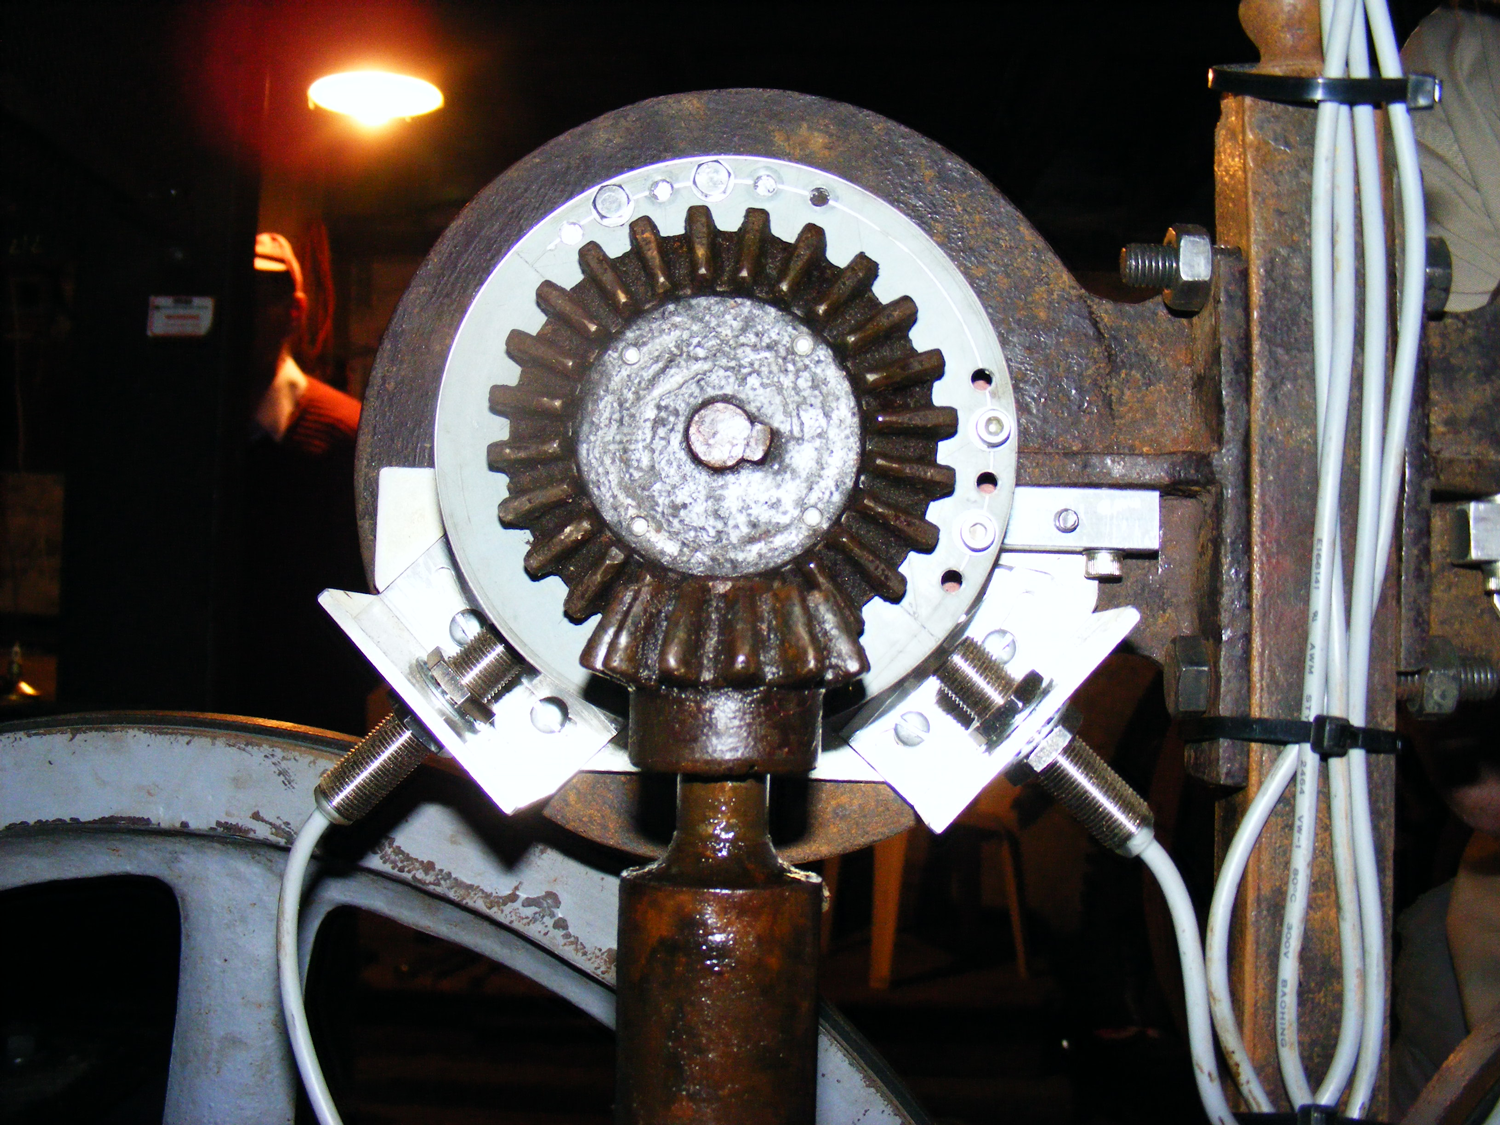 – Sensors and targets on reverse of handwheel pointers.